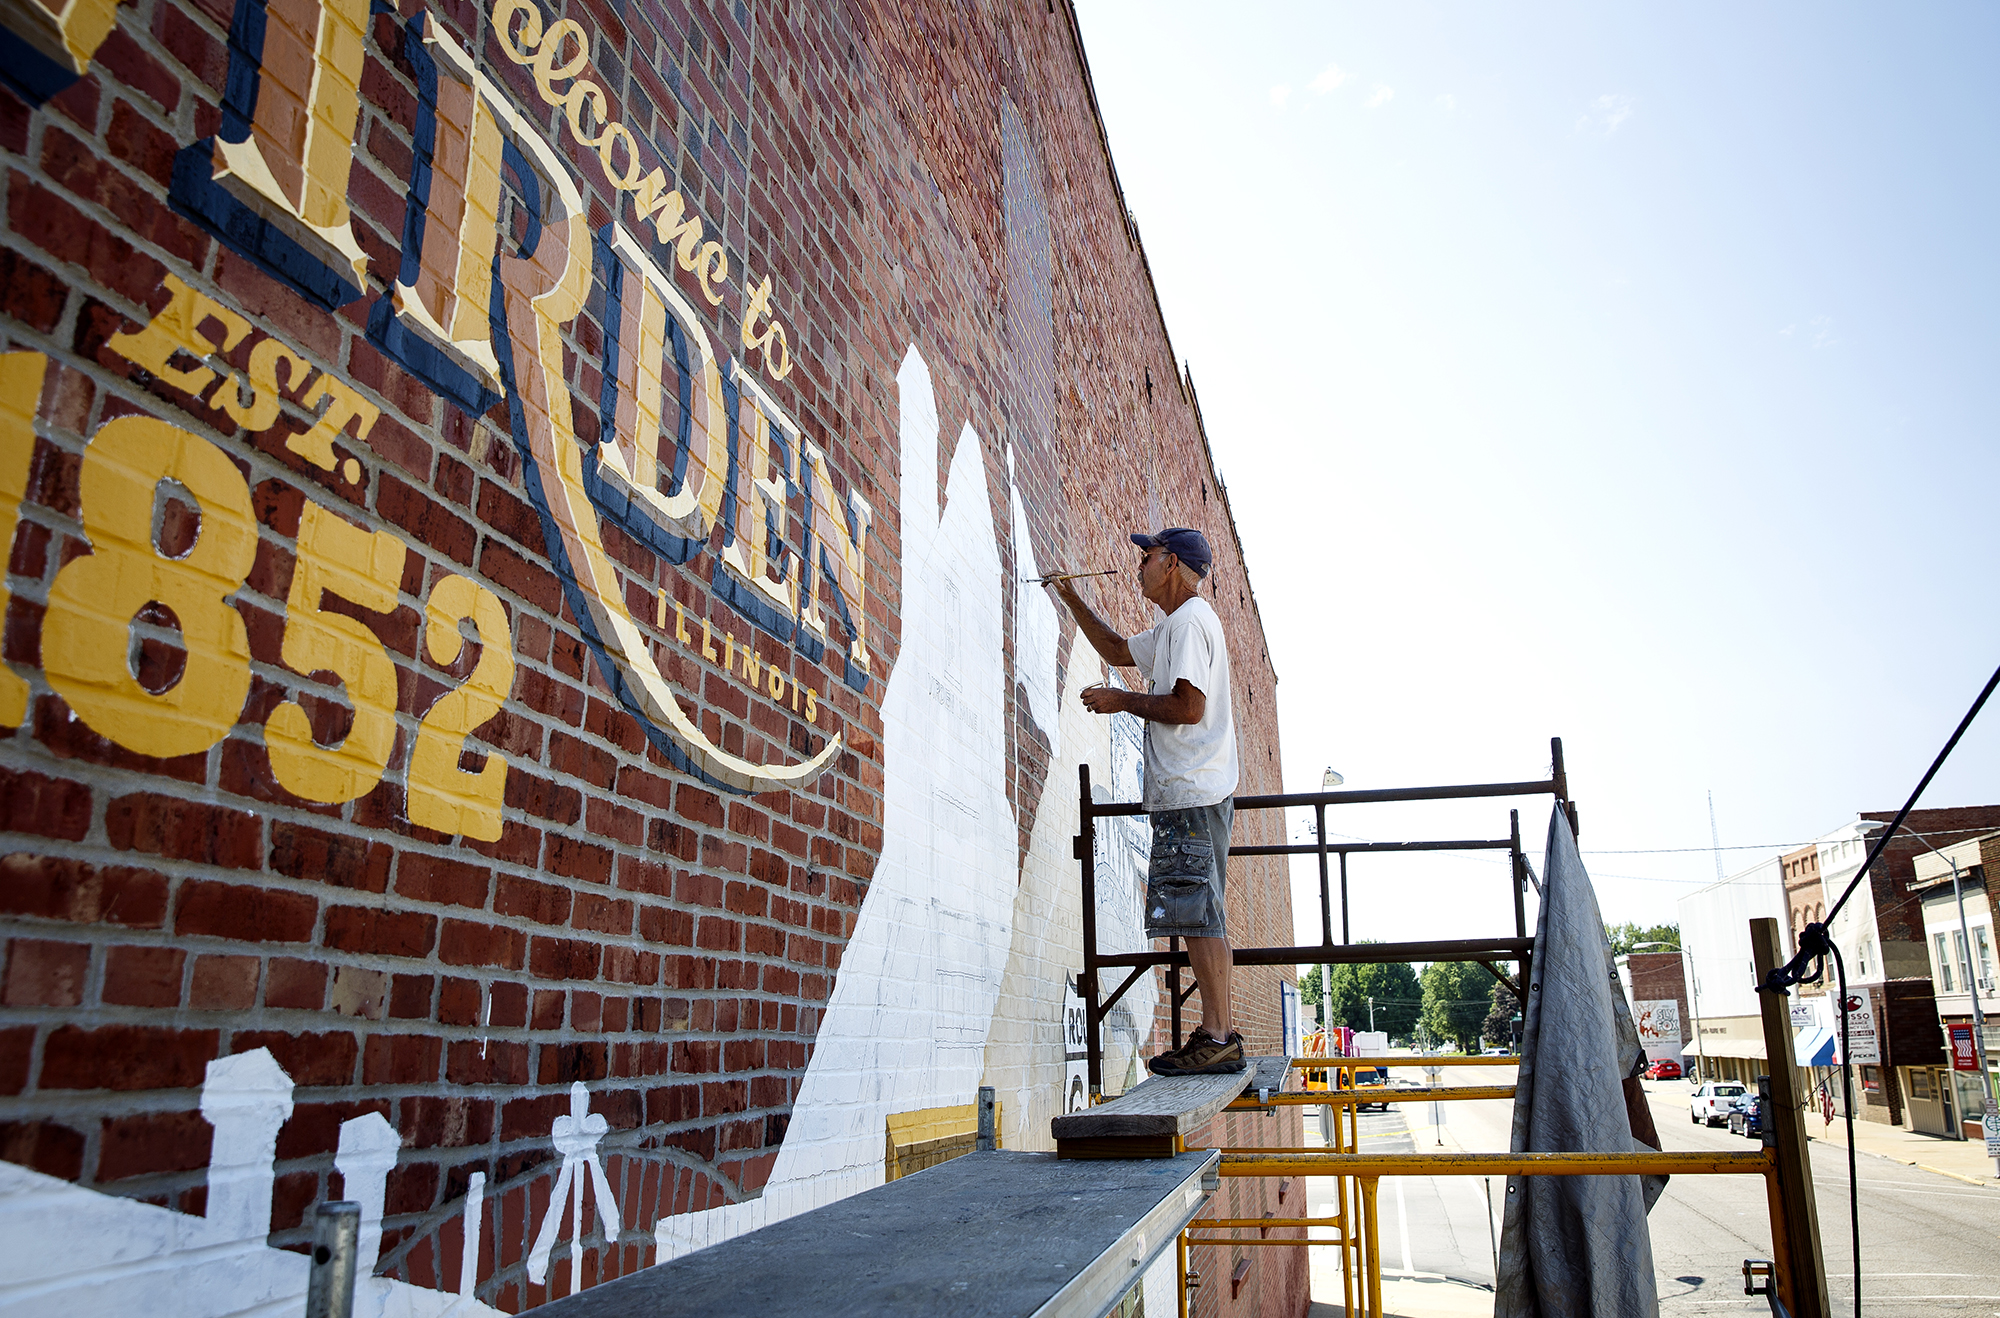 Bernie Gietl works on the new Virden History Mural on the side of the Sav-Mor Pharmacy building in Virden, Ill. Thursday, Aug. 2, 2018. Gietl and his wife, D.L. Whitlock-Gietl, are sign painters and the artists leading the project, which will include images depicting the townÕs namesake, John Virden and the Virden Hotel, its connection to the railroad, and American aviator Charles Lindbergh. Gietl says the mural should be mostly completed by the end of the weekend. [Rich Saal/The State Journal-Register]